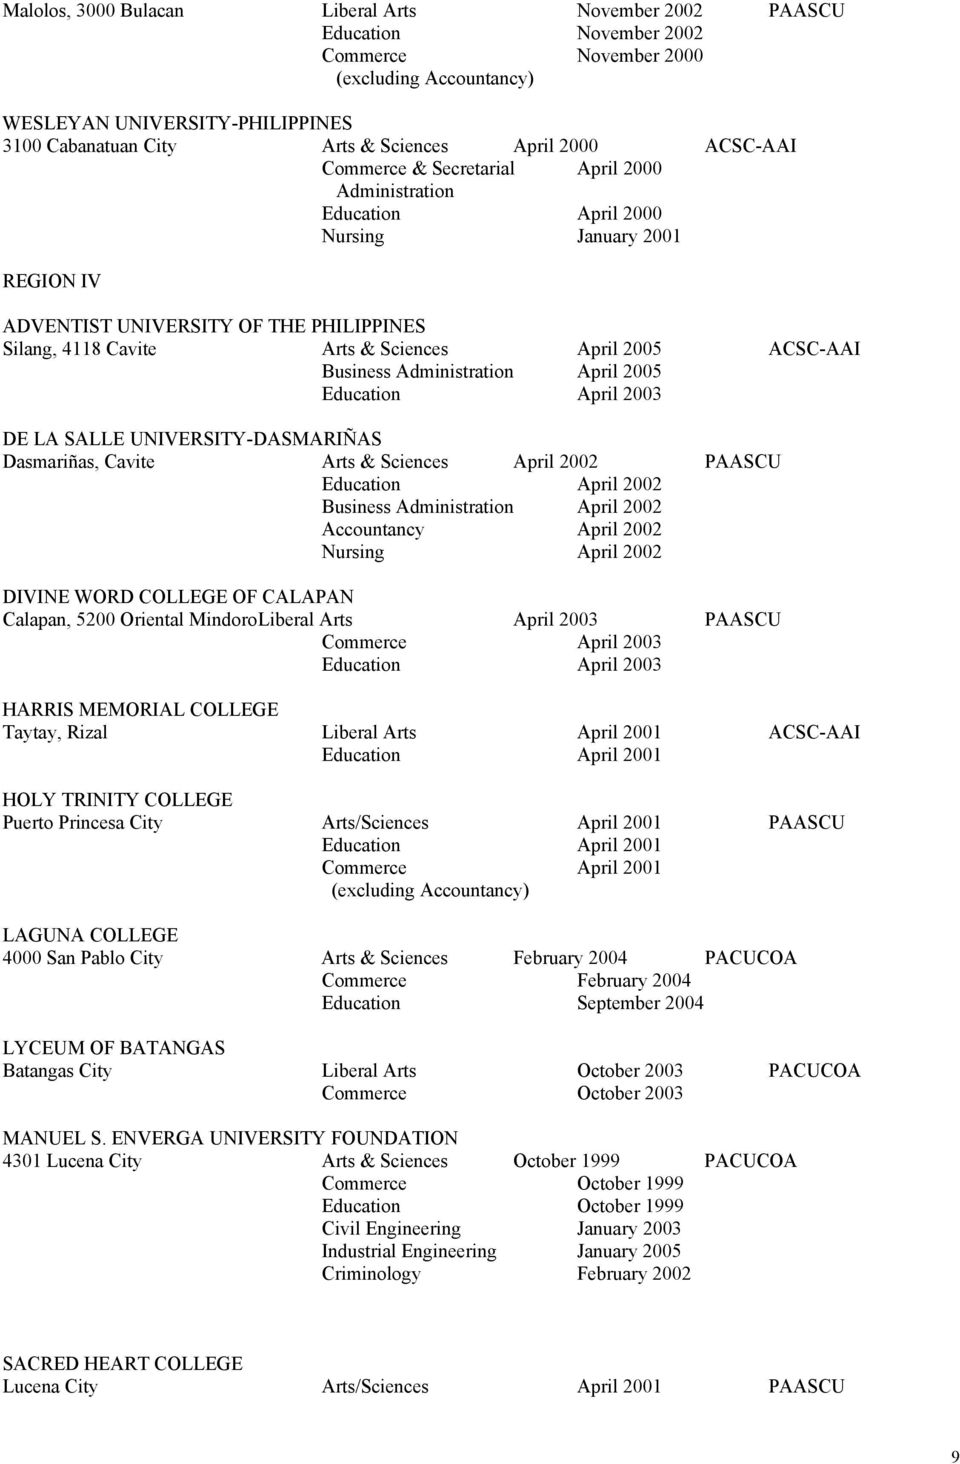 Business Administration April 2005 Education April 2003 DE LA SALLE UNIVERSITY-DASMARIÑAS Dasmariñas, Cavite Arts & Sciences April 2002 PAASCU Education April 2002 Business Administration April 2002